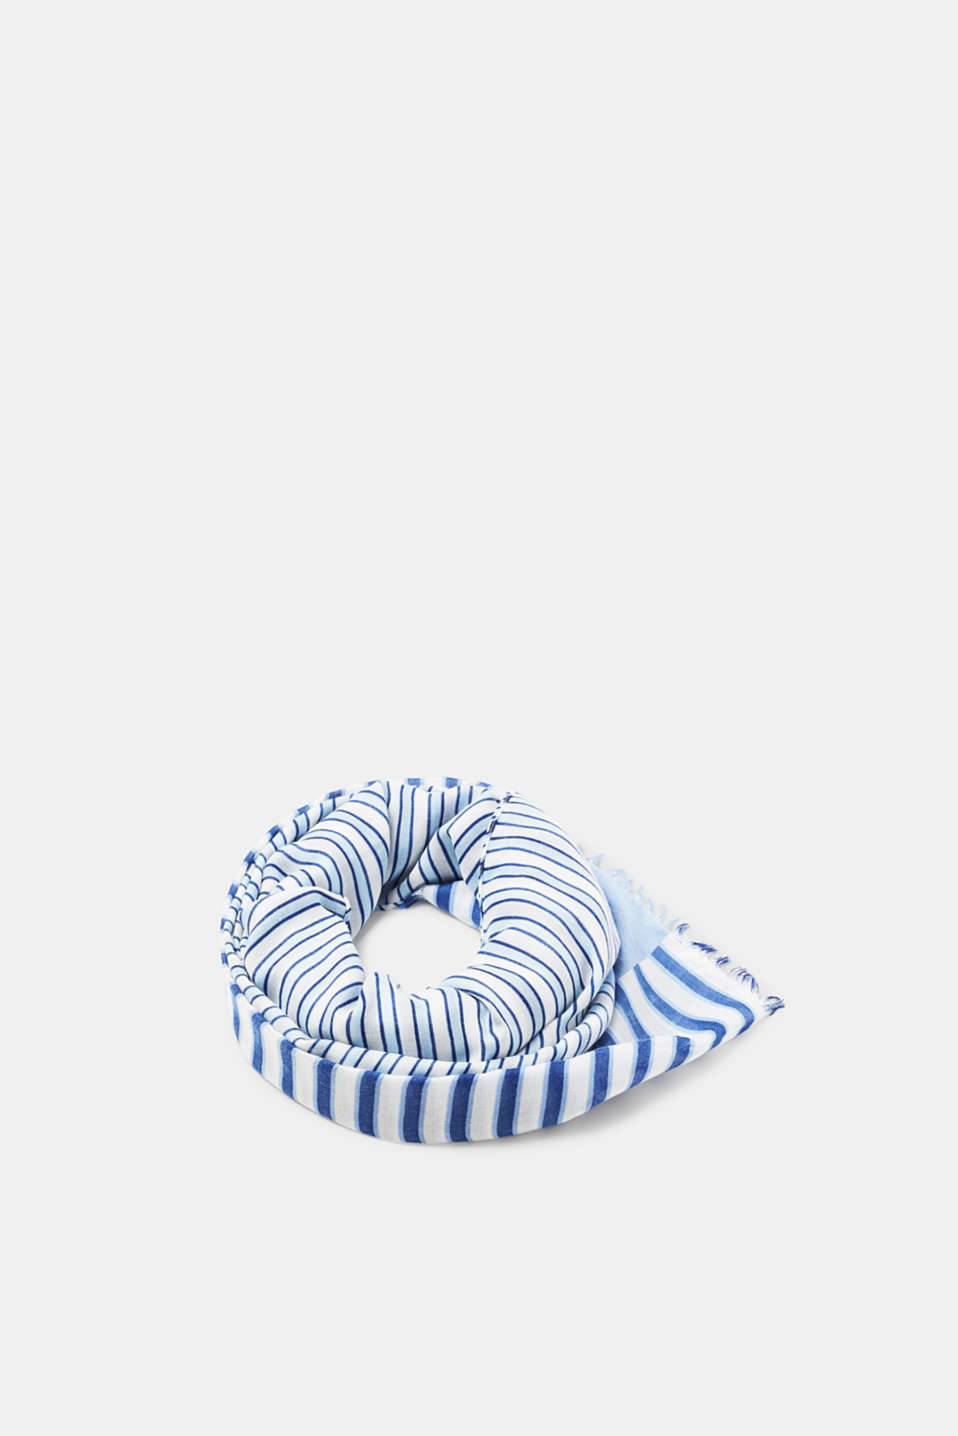 The stylish stripes make this finely flowing scarf in soft, comfy fabric extremely eye-catching.